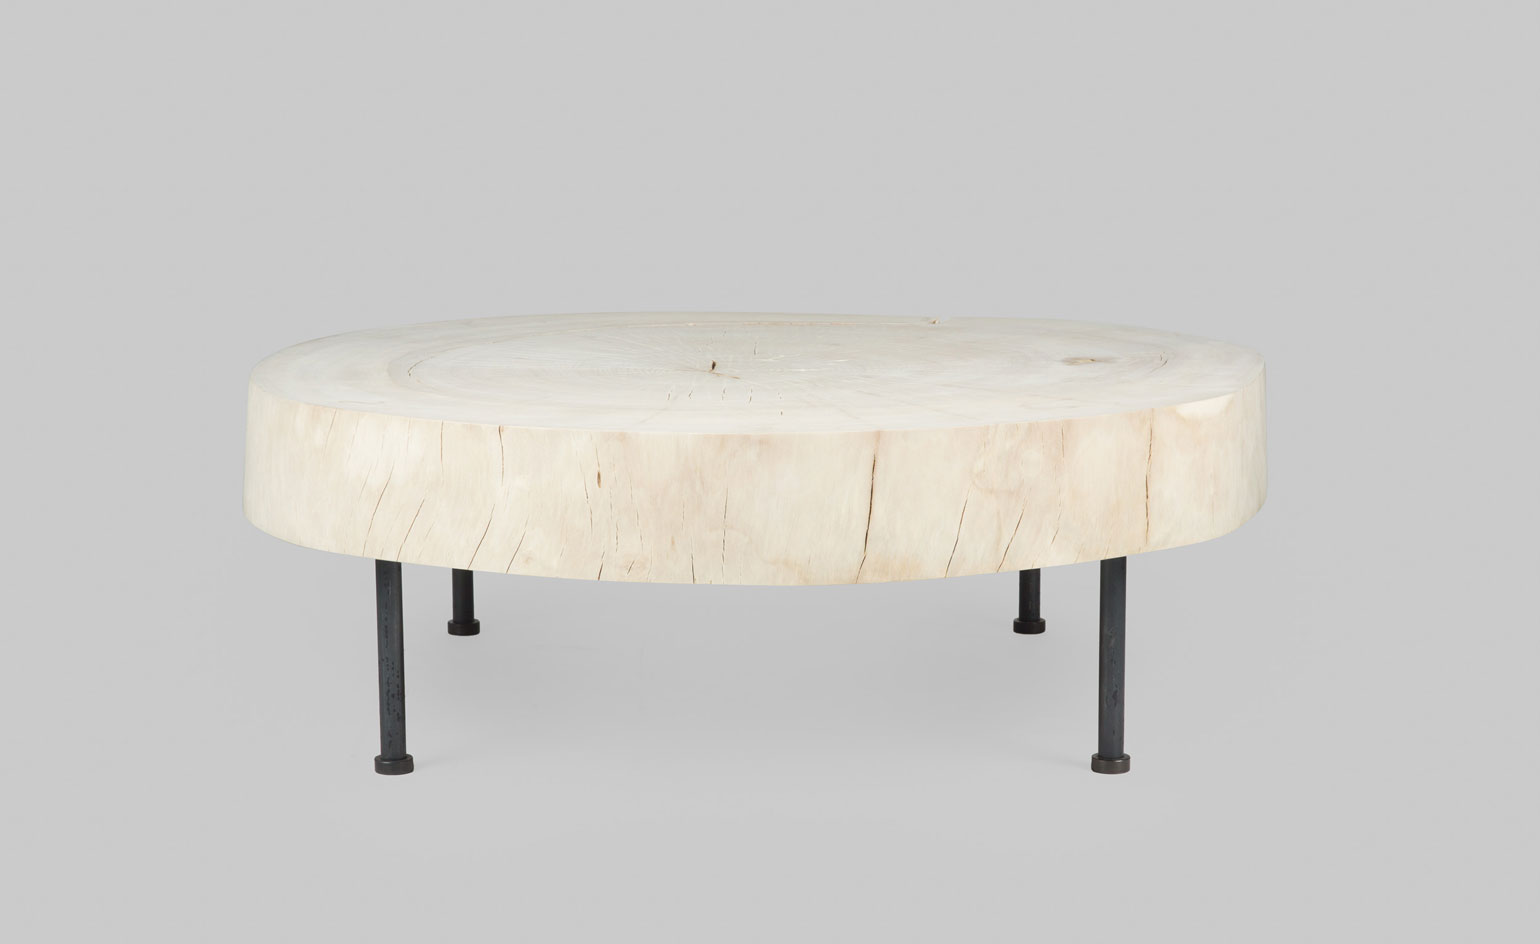 Nyc studio sawkille co launches new furniture collection for Sawkille furniture